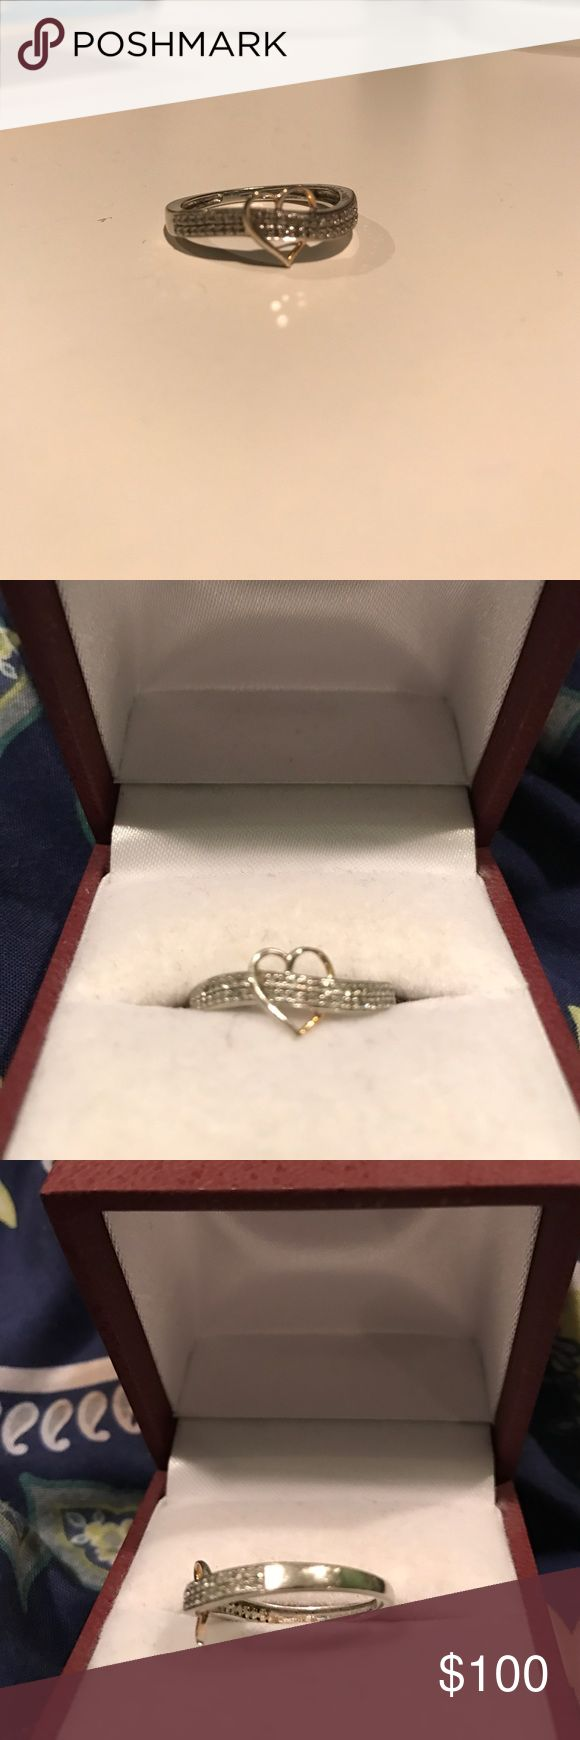 Piercing Pagoda Ring Very pretty ring purchased from piercing pagoda. 10K two-tone gold design features a fluid row of diamonds totaling 1/7 ct. crossing through a polished, open golden heart at the center. piercing pagoda Jewelry Rings